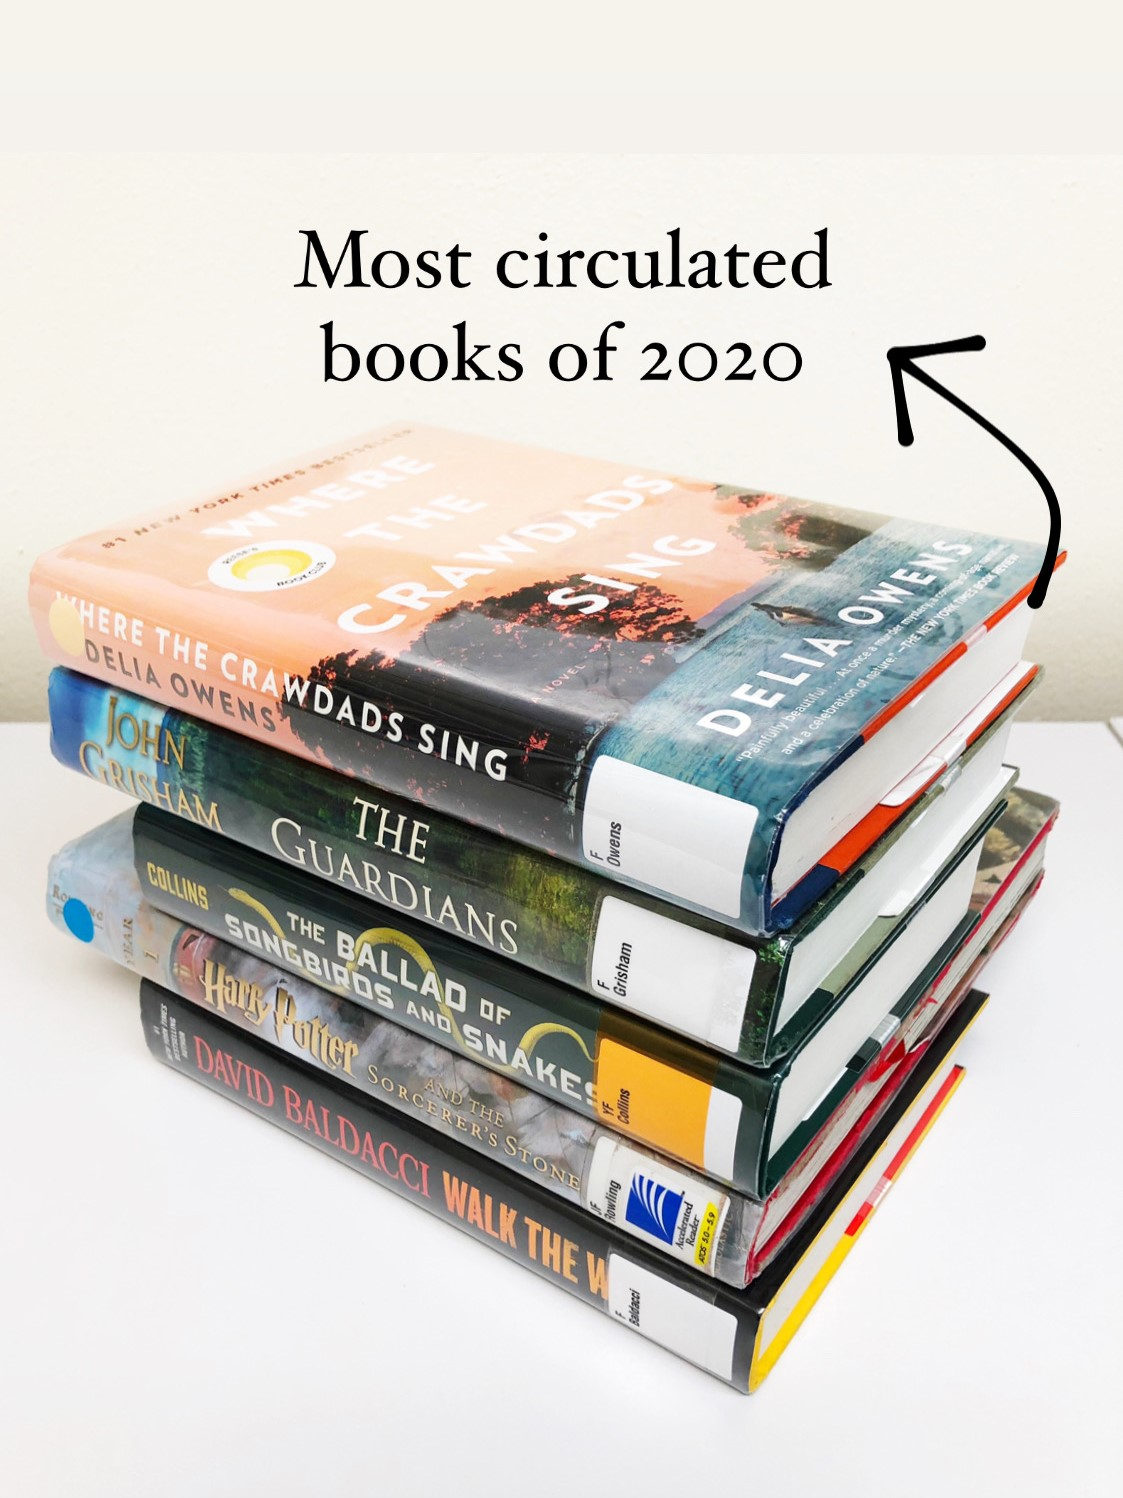 Library announces the most circulating items of 2020